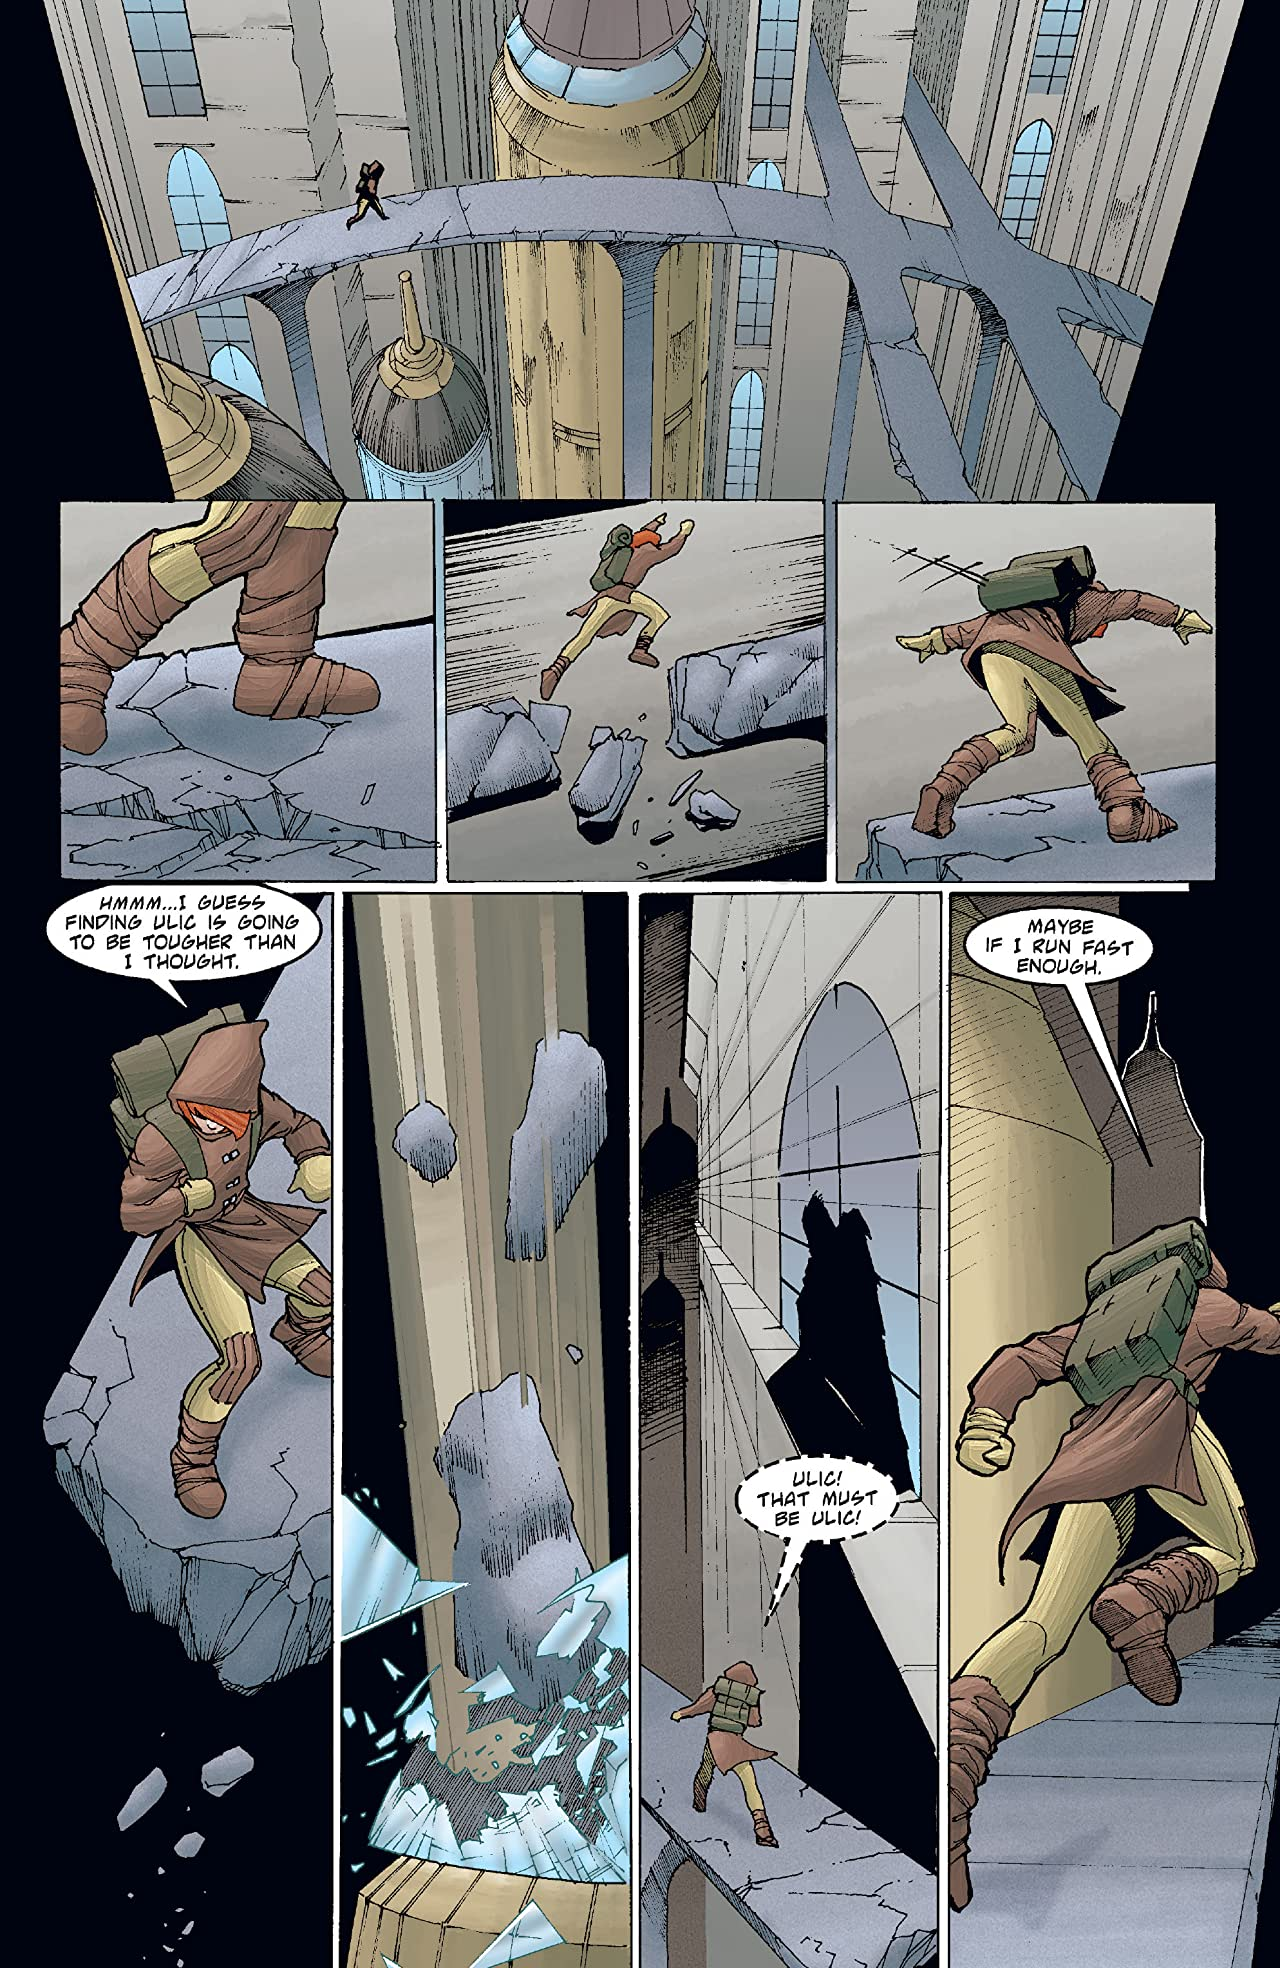 Star Wars: Tales of the Jedi - Redemption (1998) #3 (of 5)